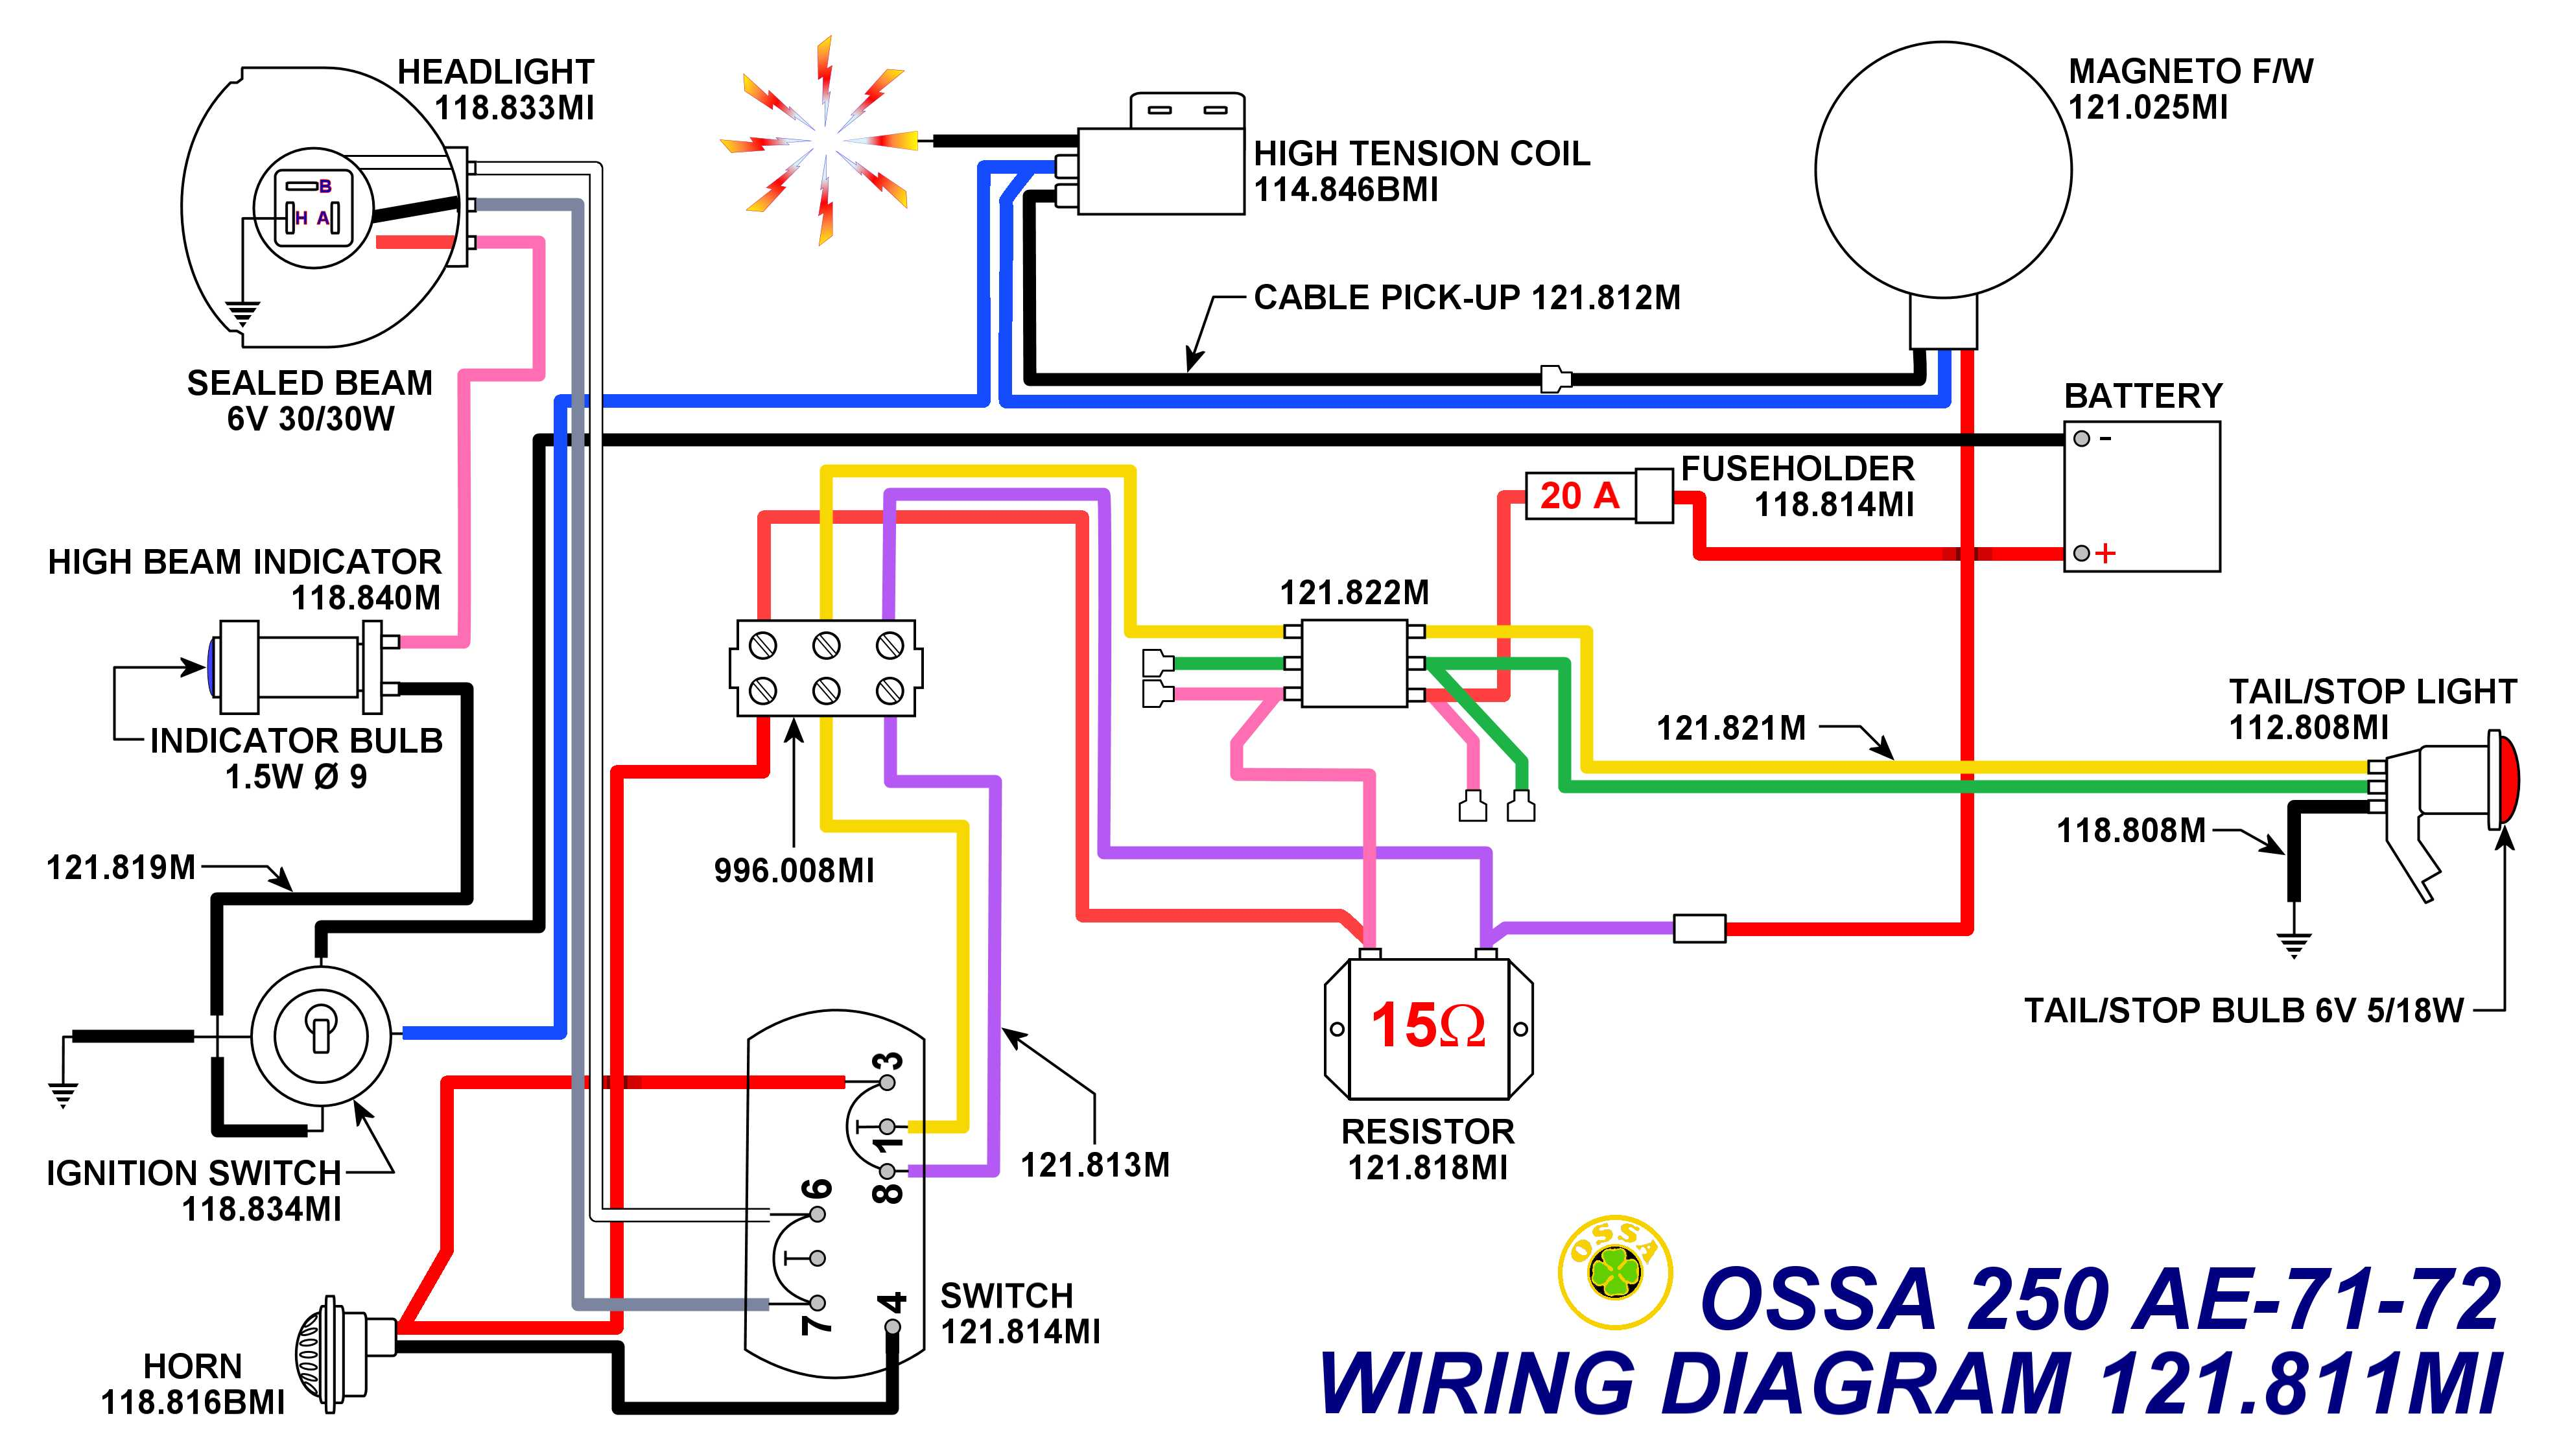 John Deere 125 Wiring Harness | Wiring Diagram 2019 on three position switch diagram, key switch tractor, grasshopper diagram, key switch relay, mercury key switch diagram, 3 position key switch diagram, ignition switch diagram, lawn mower key switch diagram, key parts diagram, omc key switch diagram, 3 position toggle switch diagram, key lighting diagram,